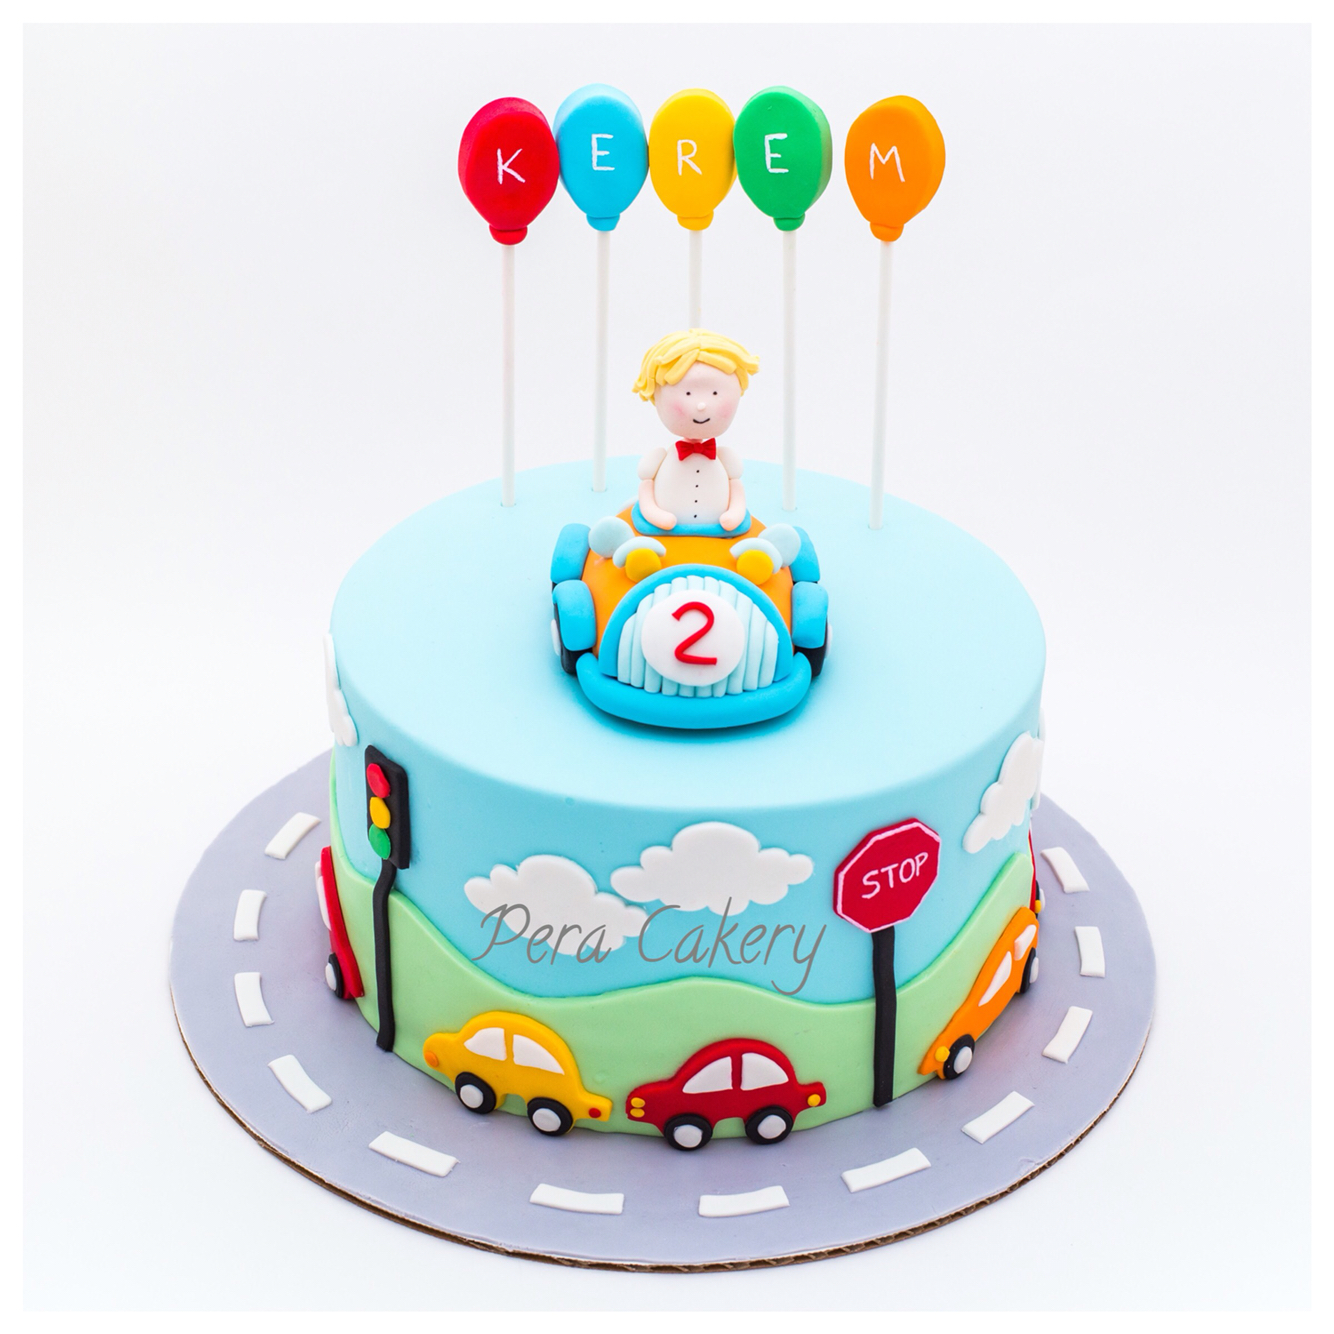 9 Disney Birthday Cakes For 2 Year Olds Boys Photo 2 Year Old Boy